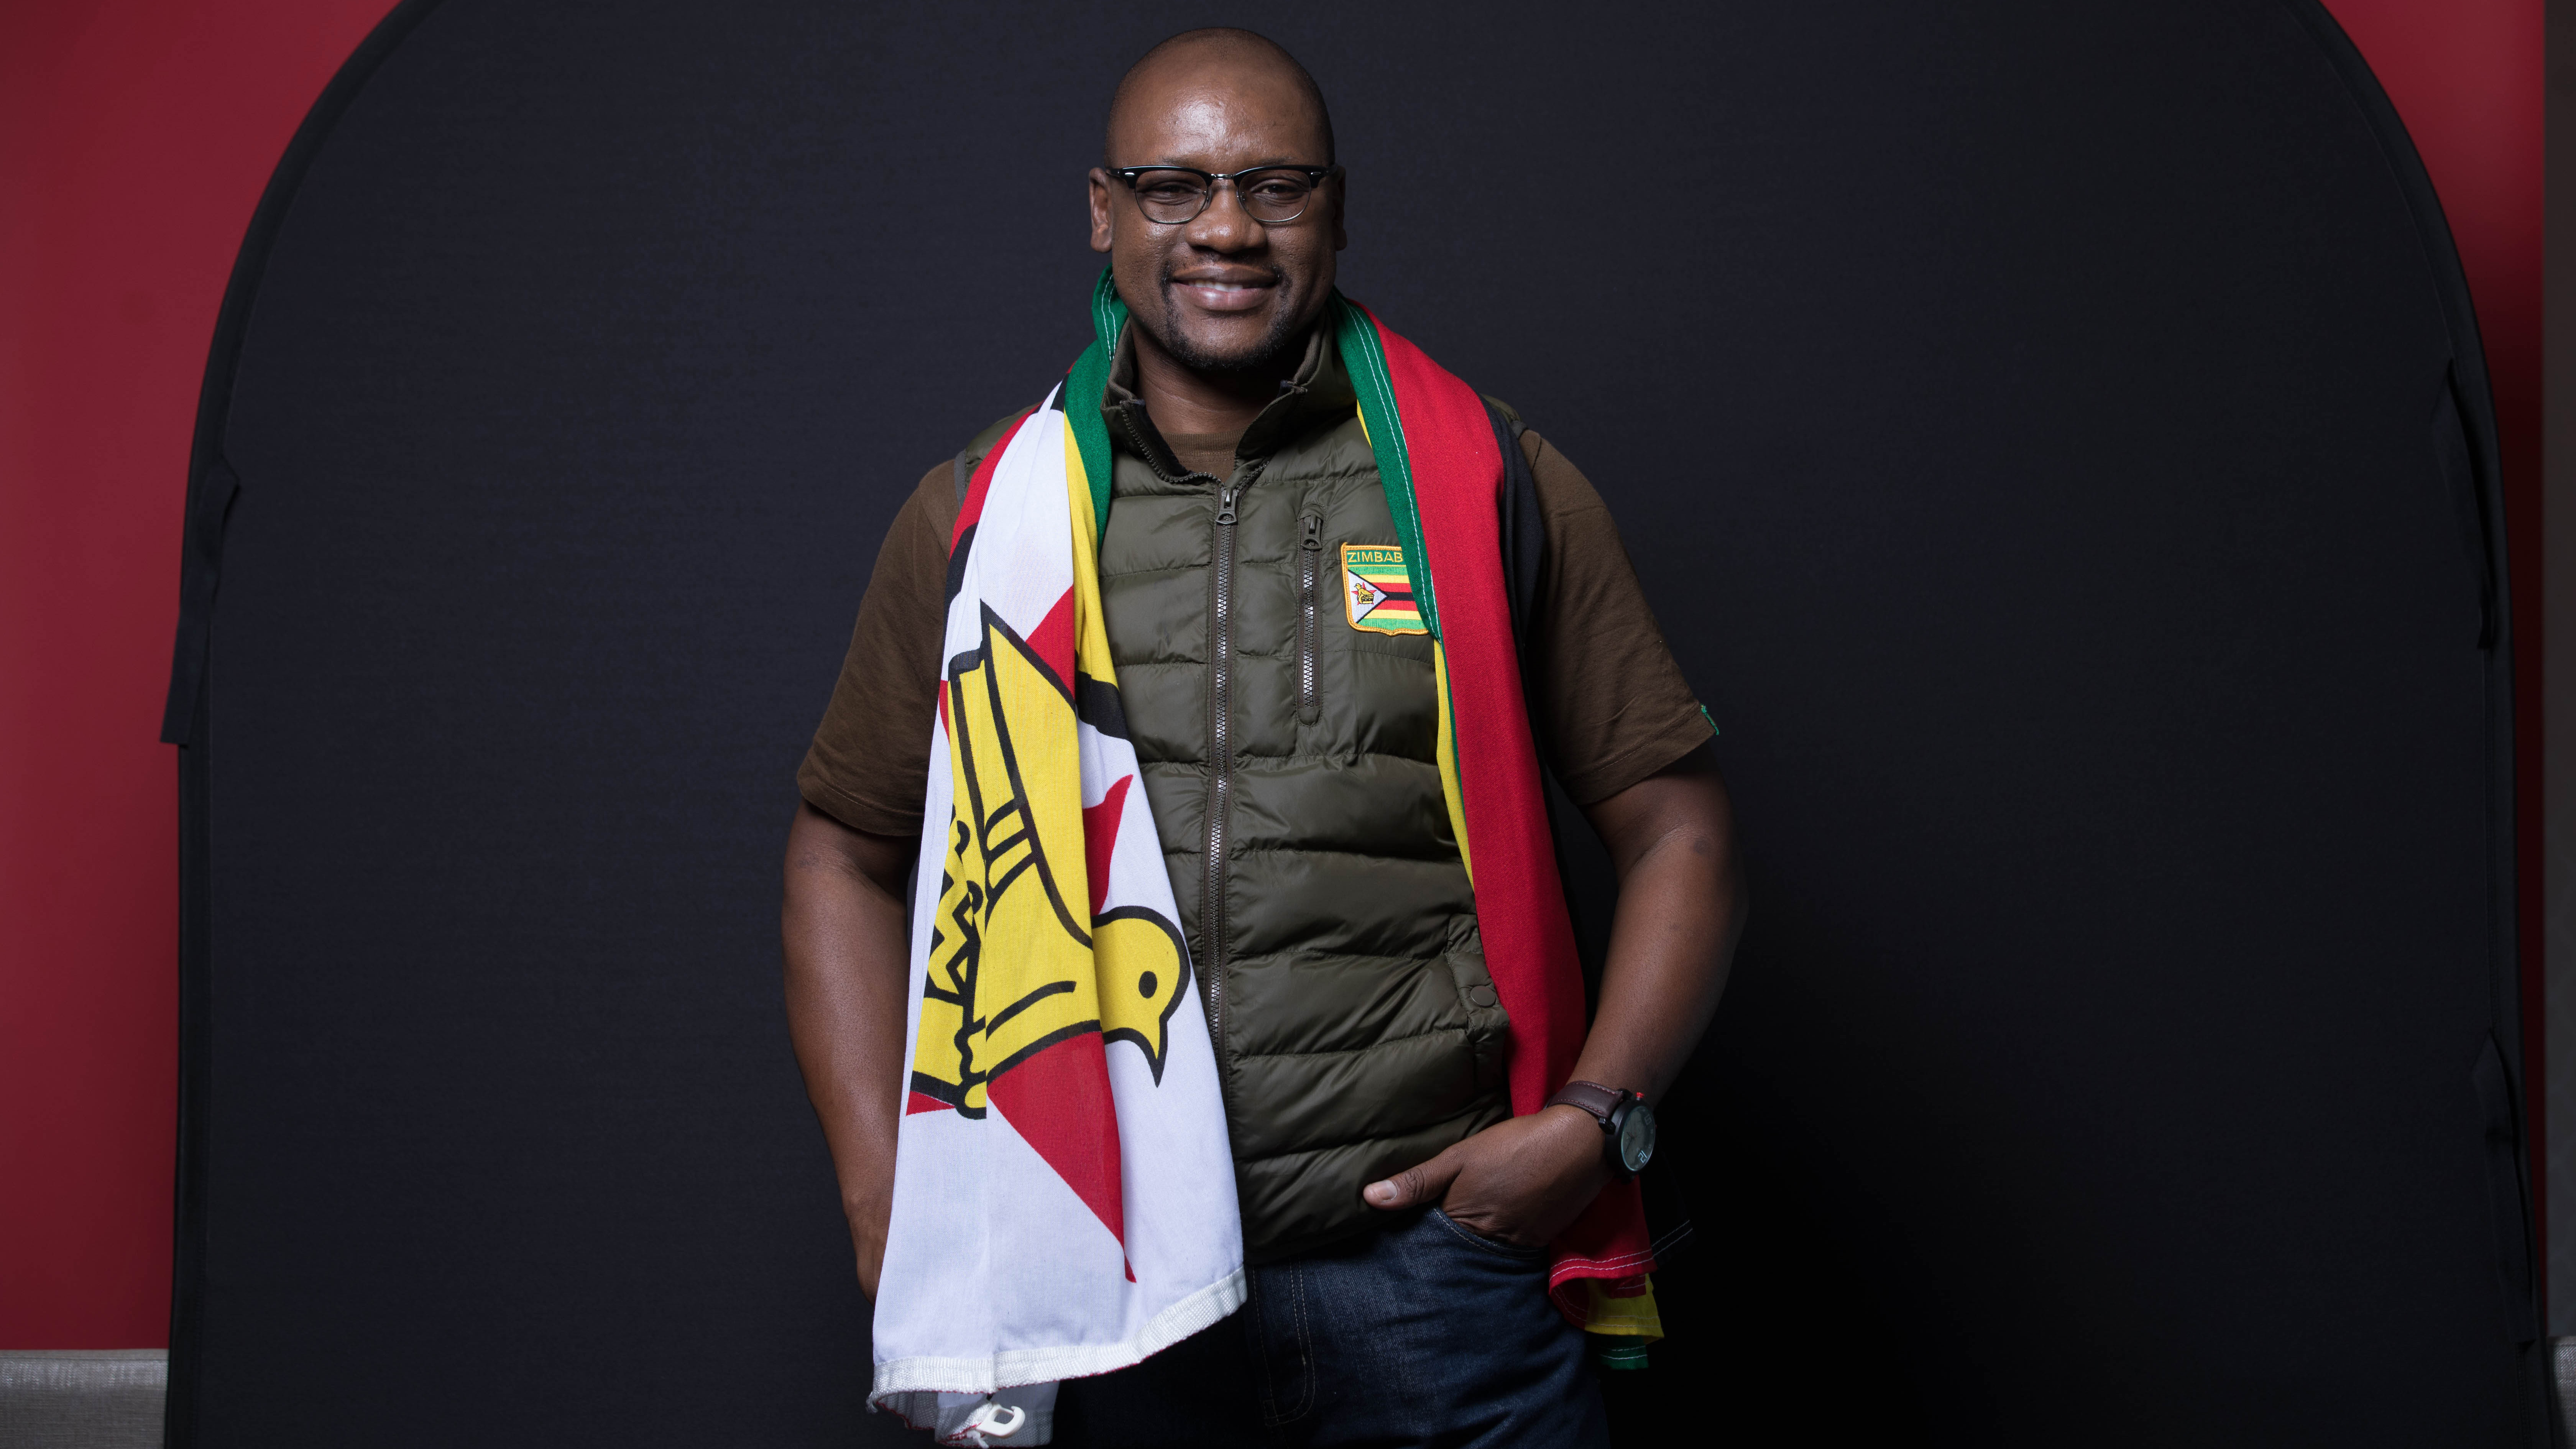 """Before 2016, Evan Mawarire was a little-known pastor in Zimbabwe. Now he's entered politics. """"People went so far as clamoring for me to run for president,"""" he said. """"That is not a call to be taken lightly."""""""